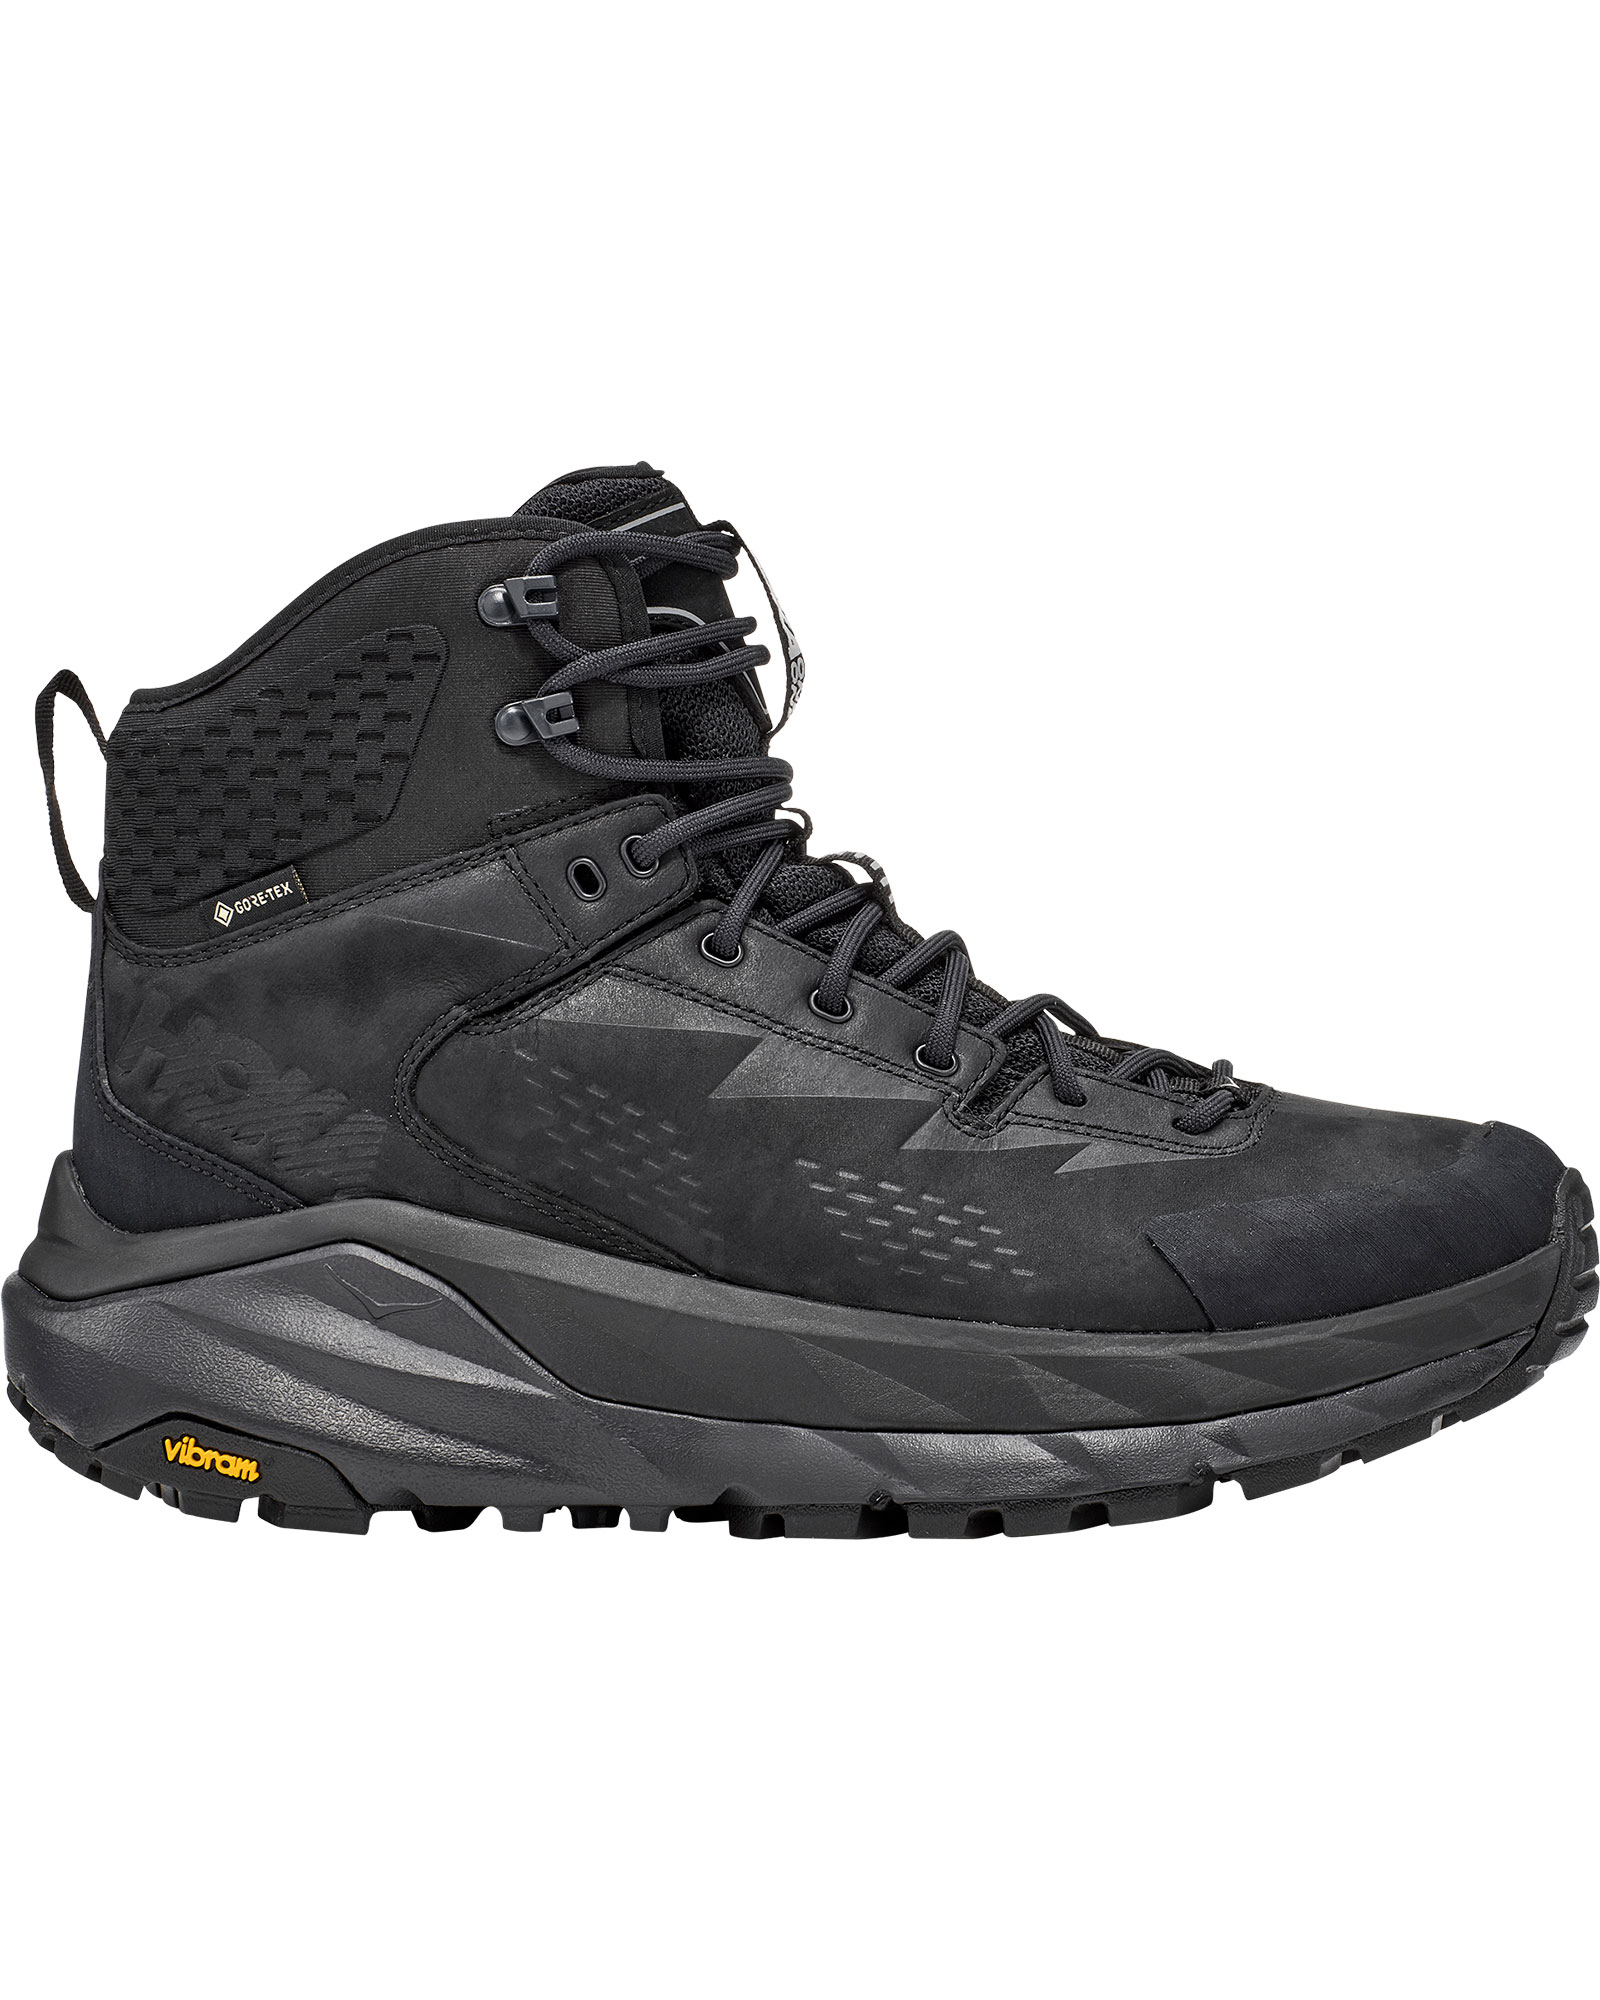 Hoka One One Men's Kaha GORE-TEX Walking Boots 0